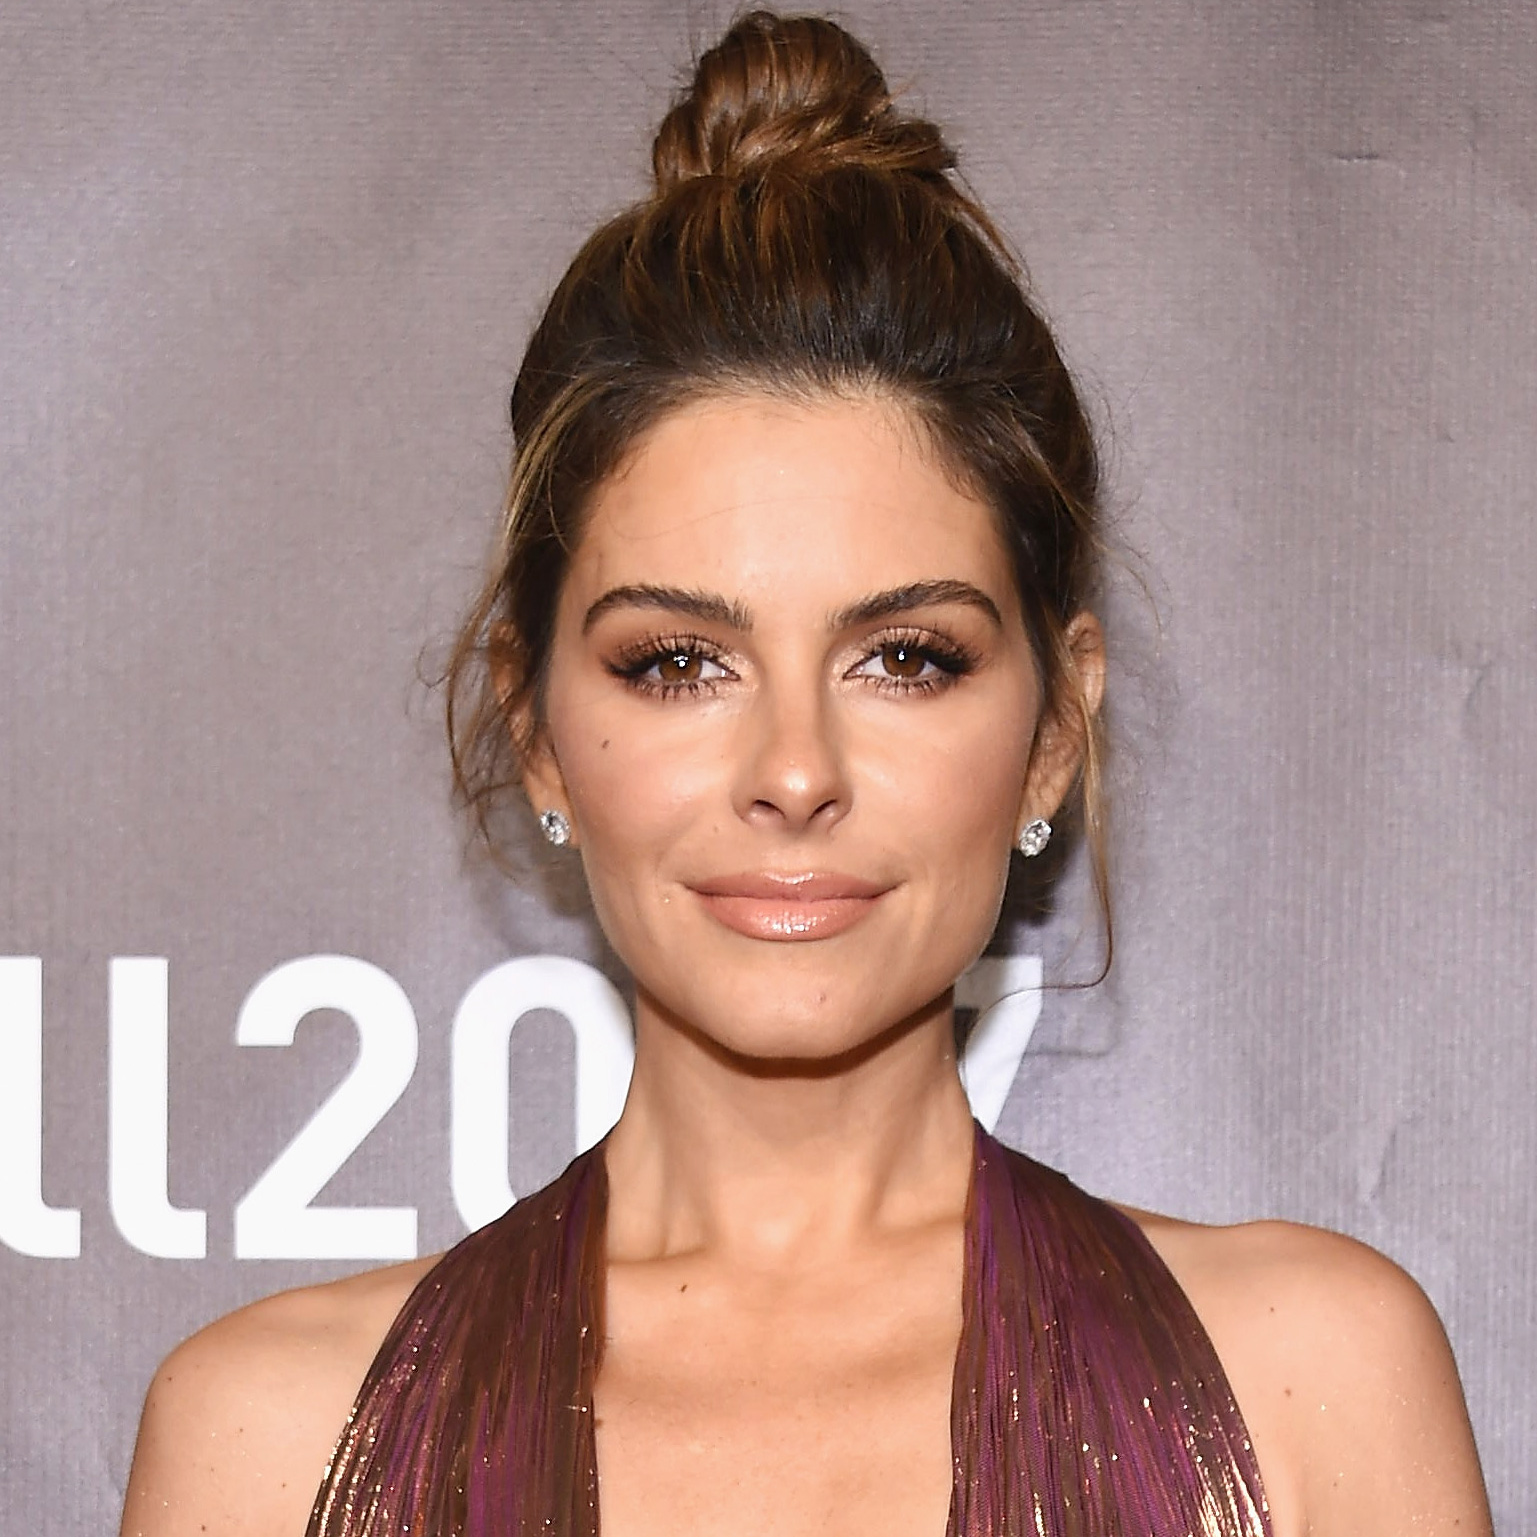 Celebs Who Revealed Health Issues in 2017 - Maria Menounos